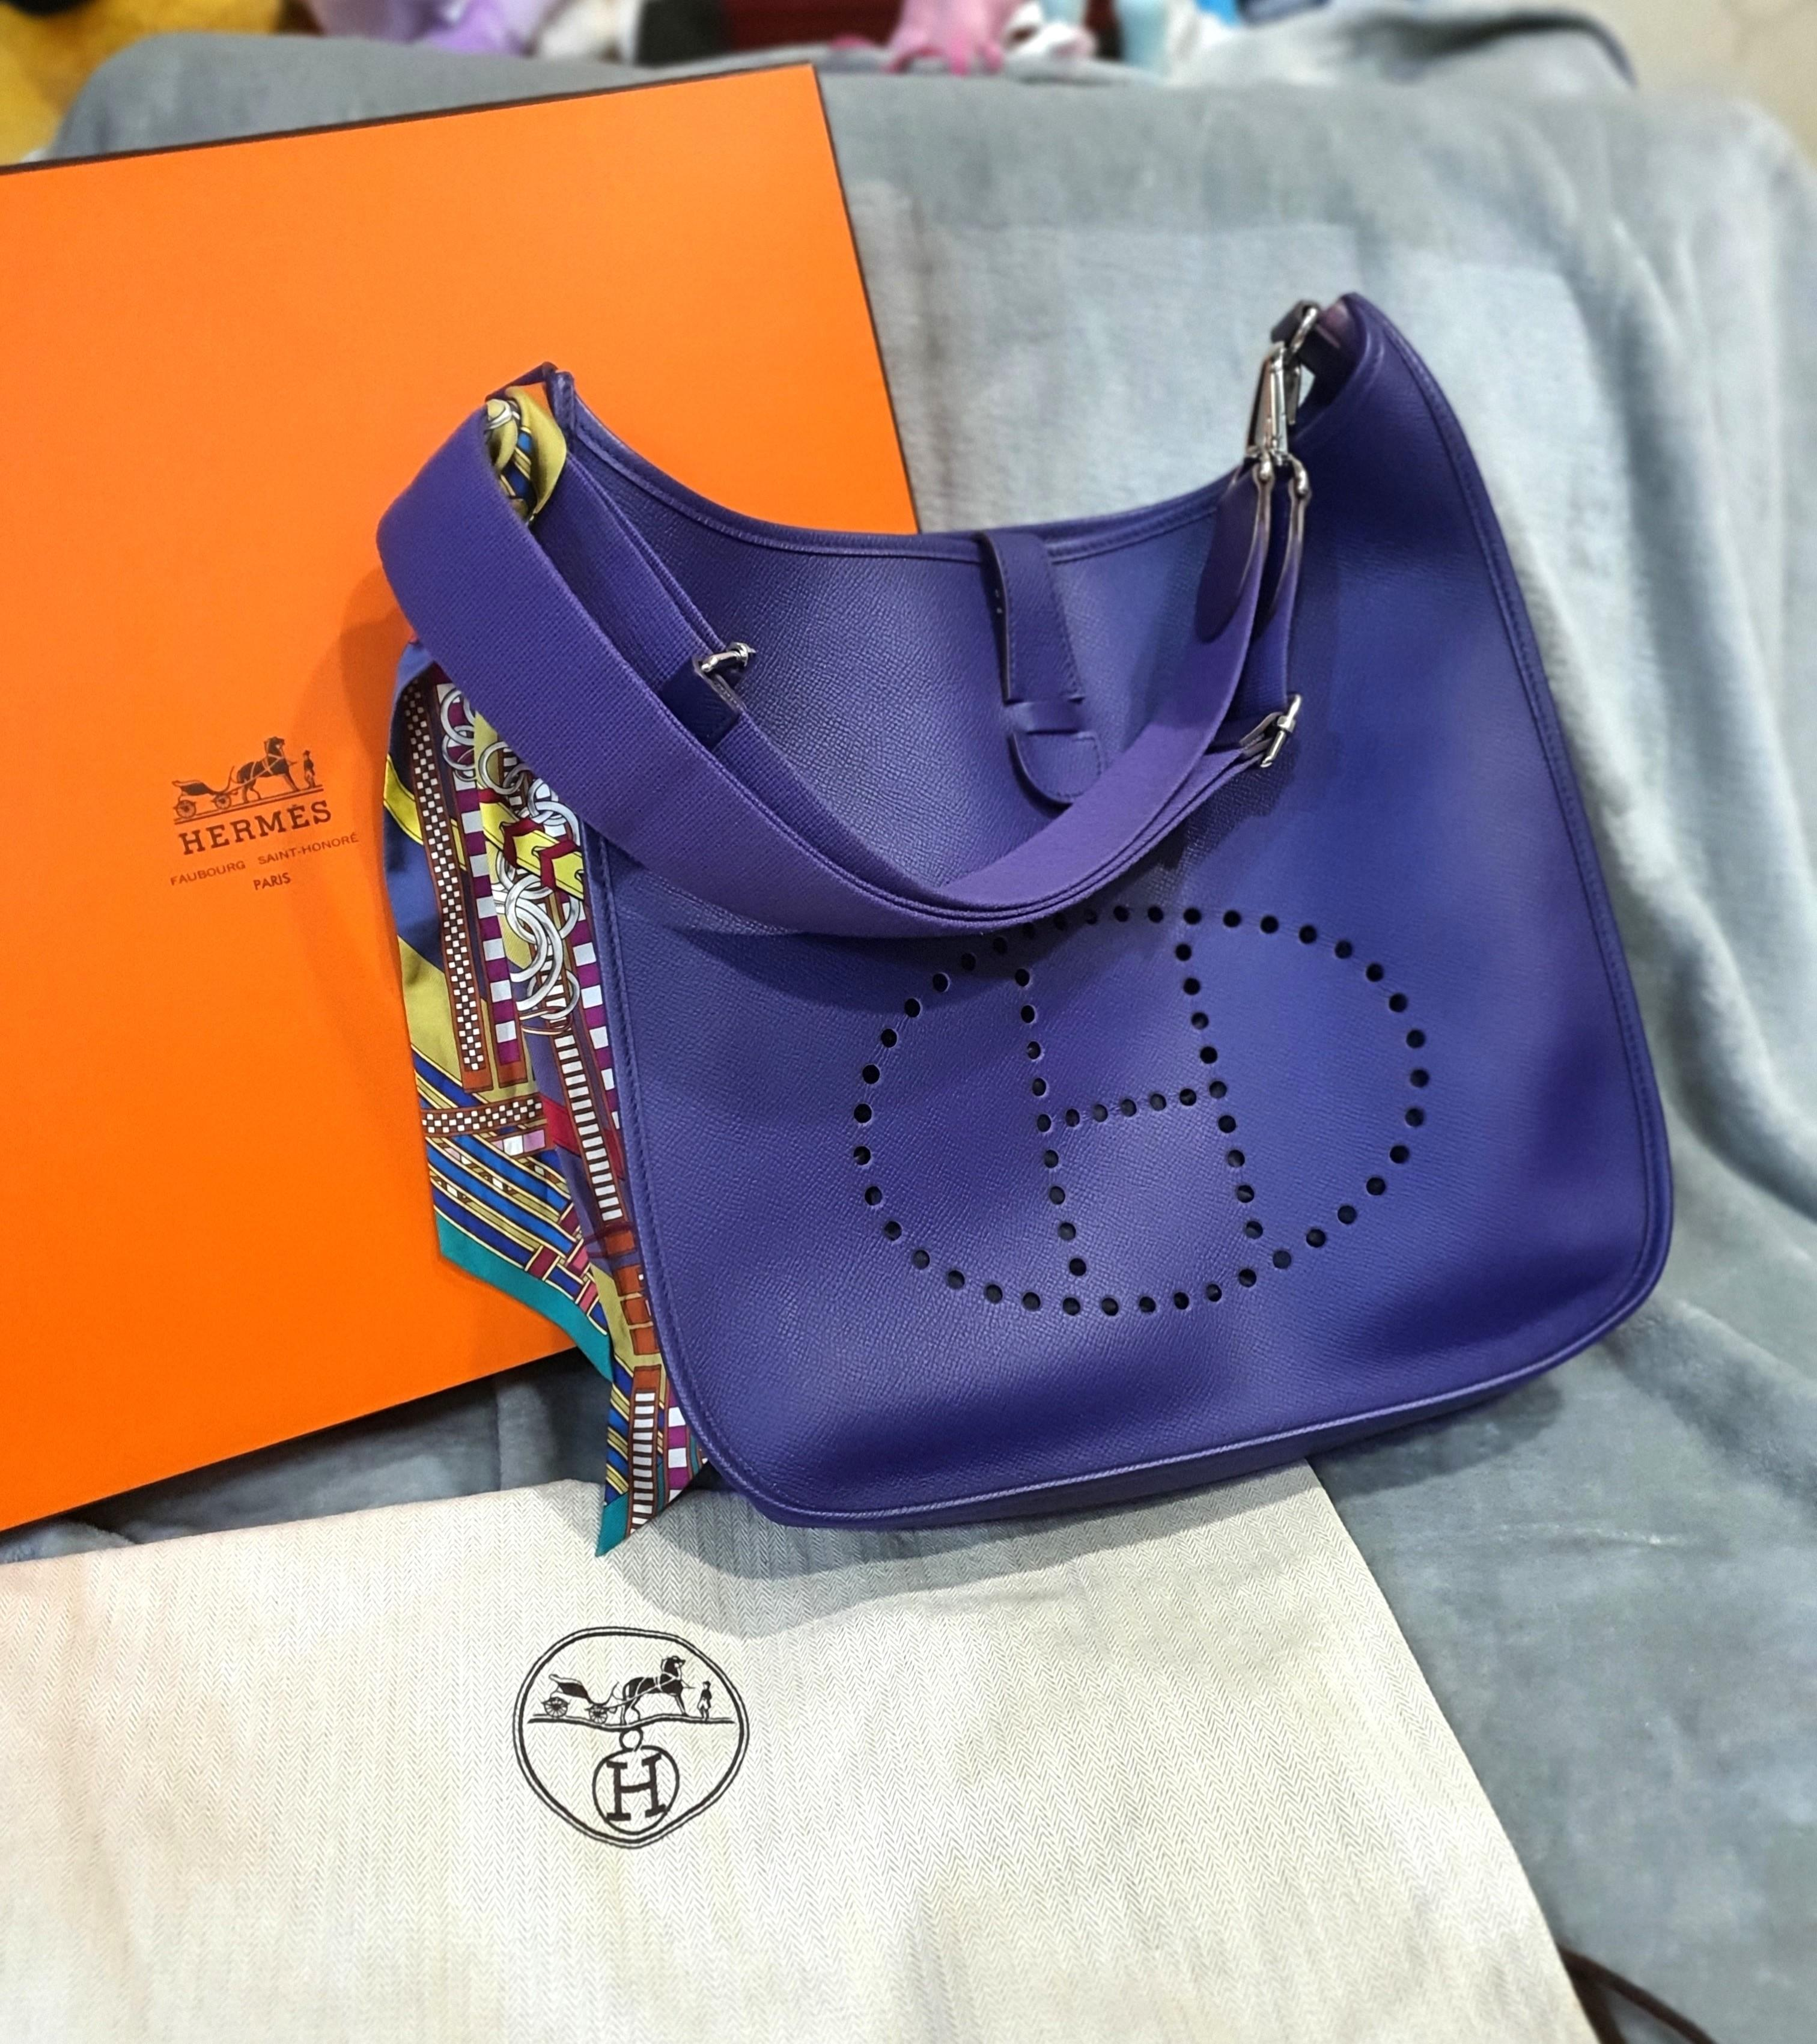 💜💜Hermes Evelyne III 33 Epson PHW in Crocus - Full Set incl Receipt Immaculate Condition